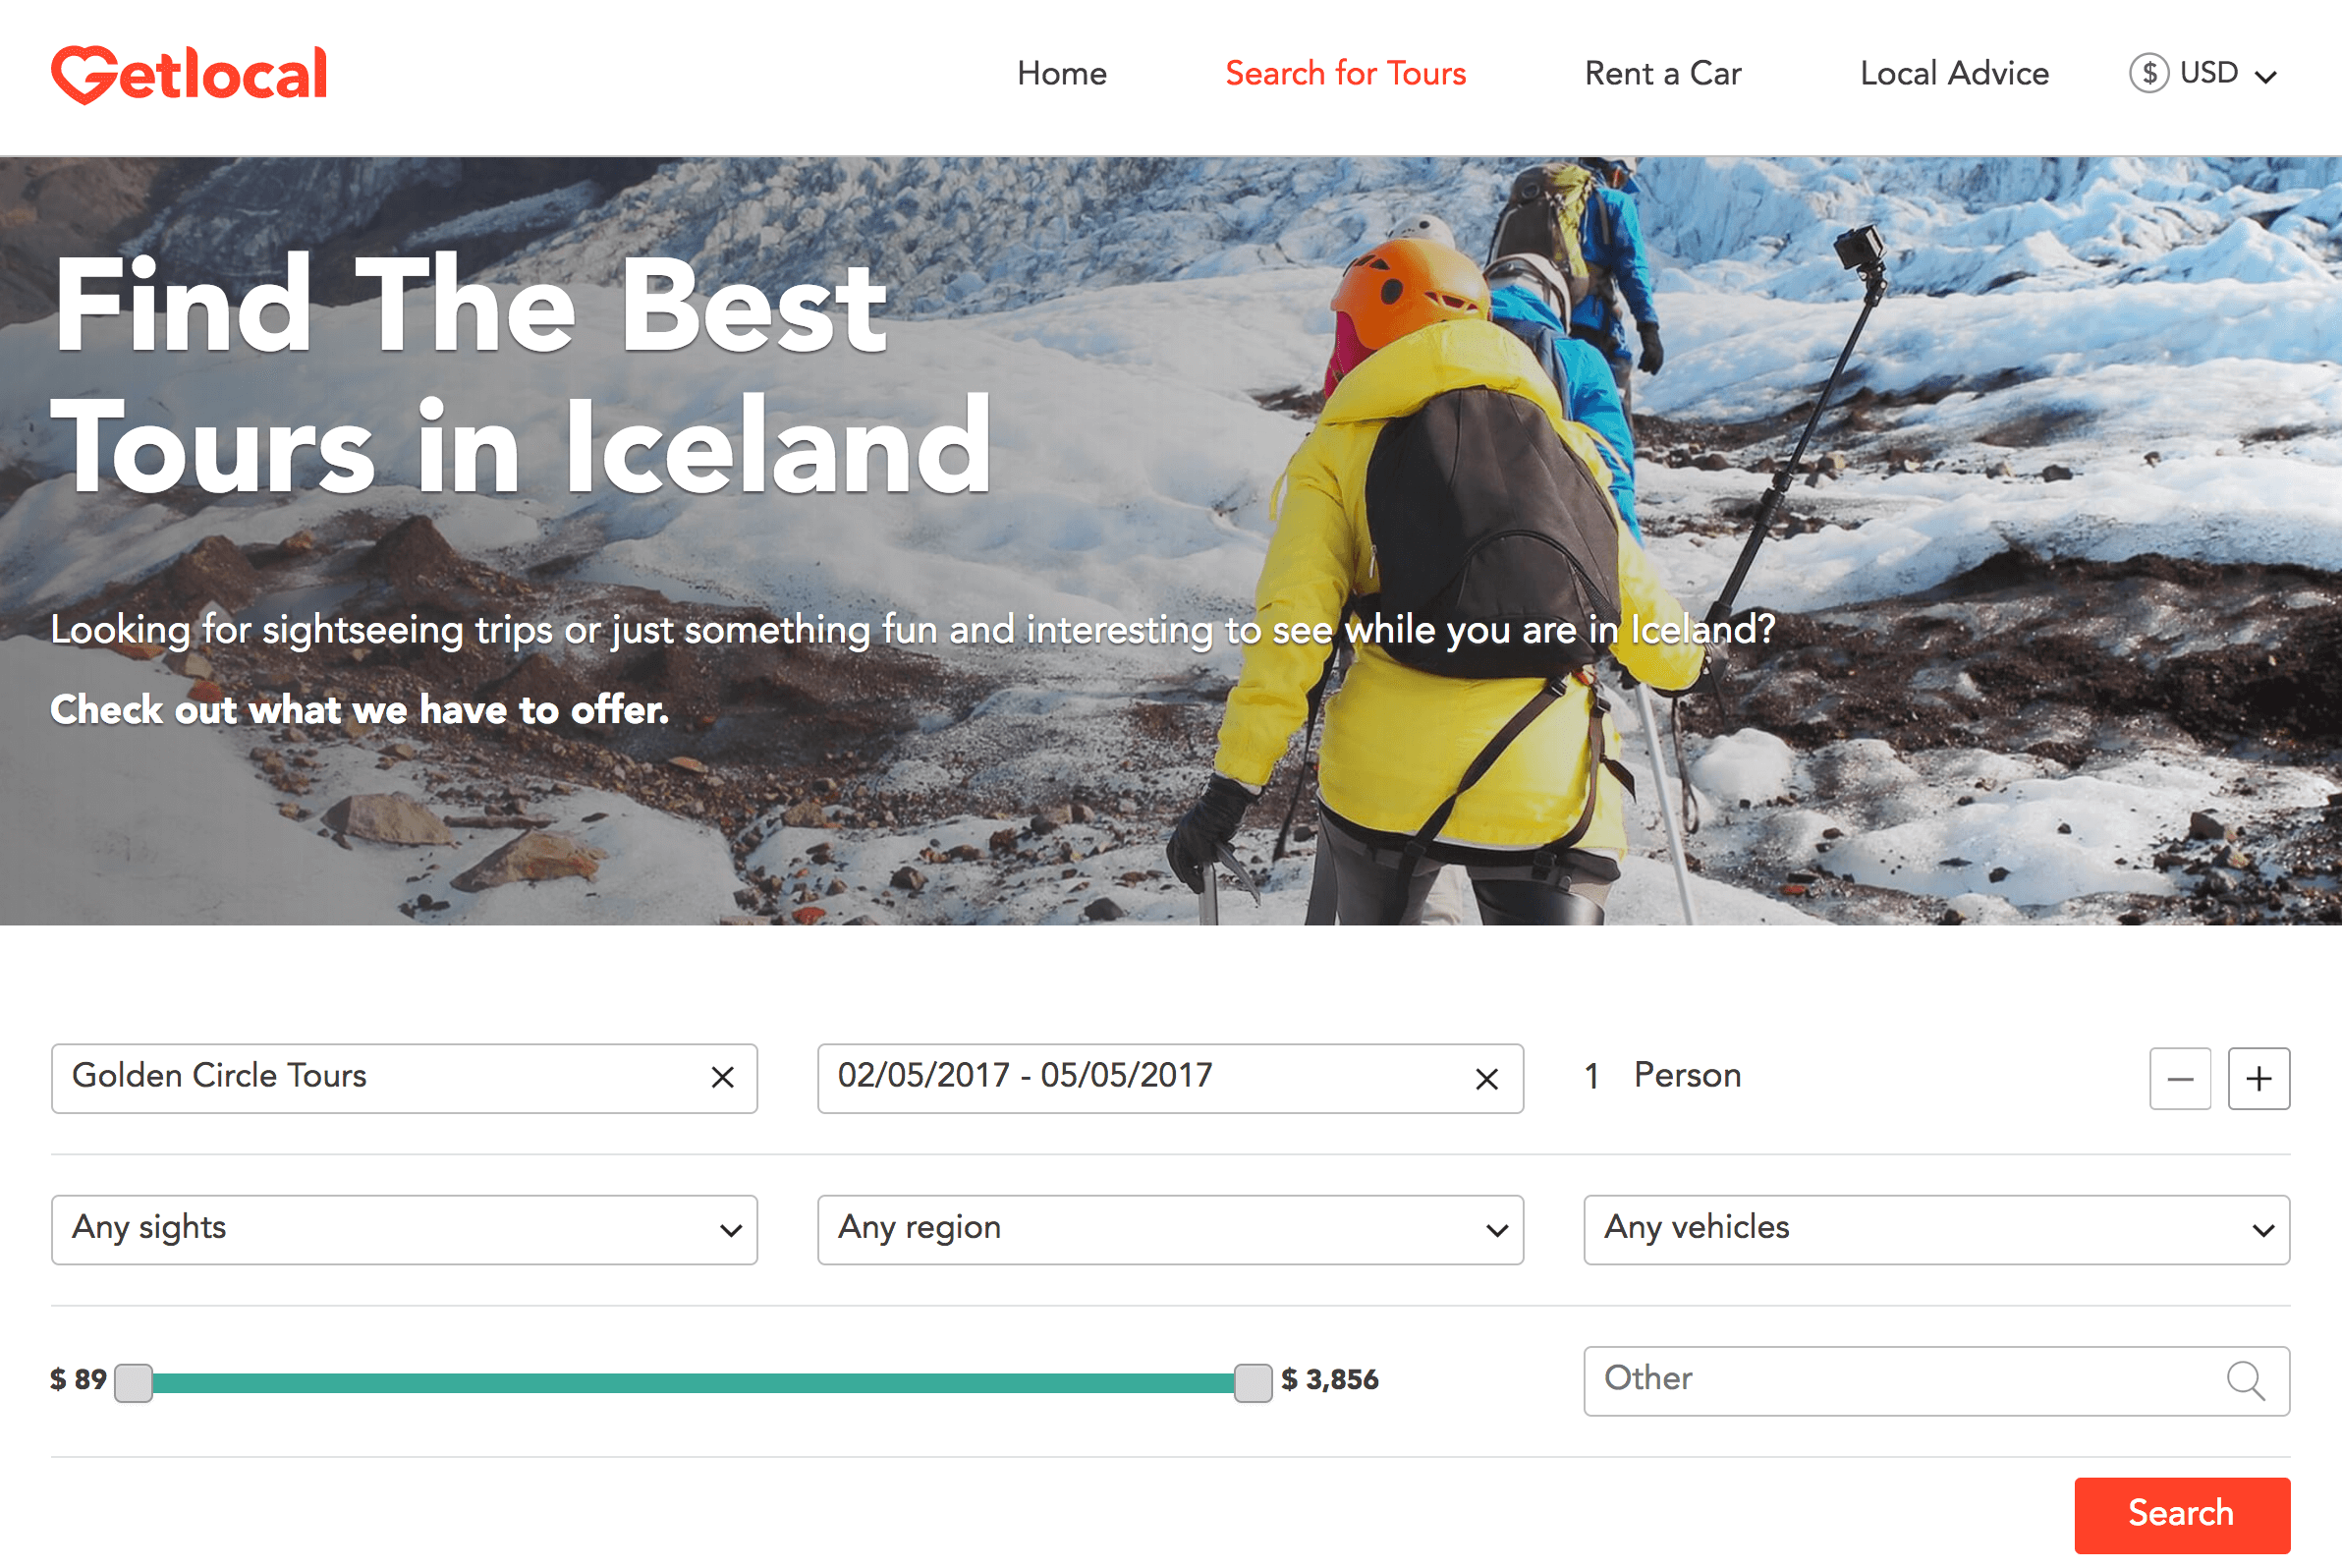 GetLocal launches new search engine for tours in Iceland